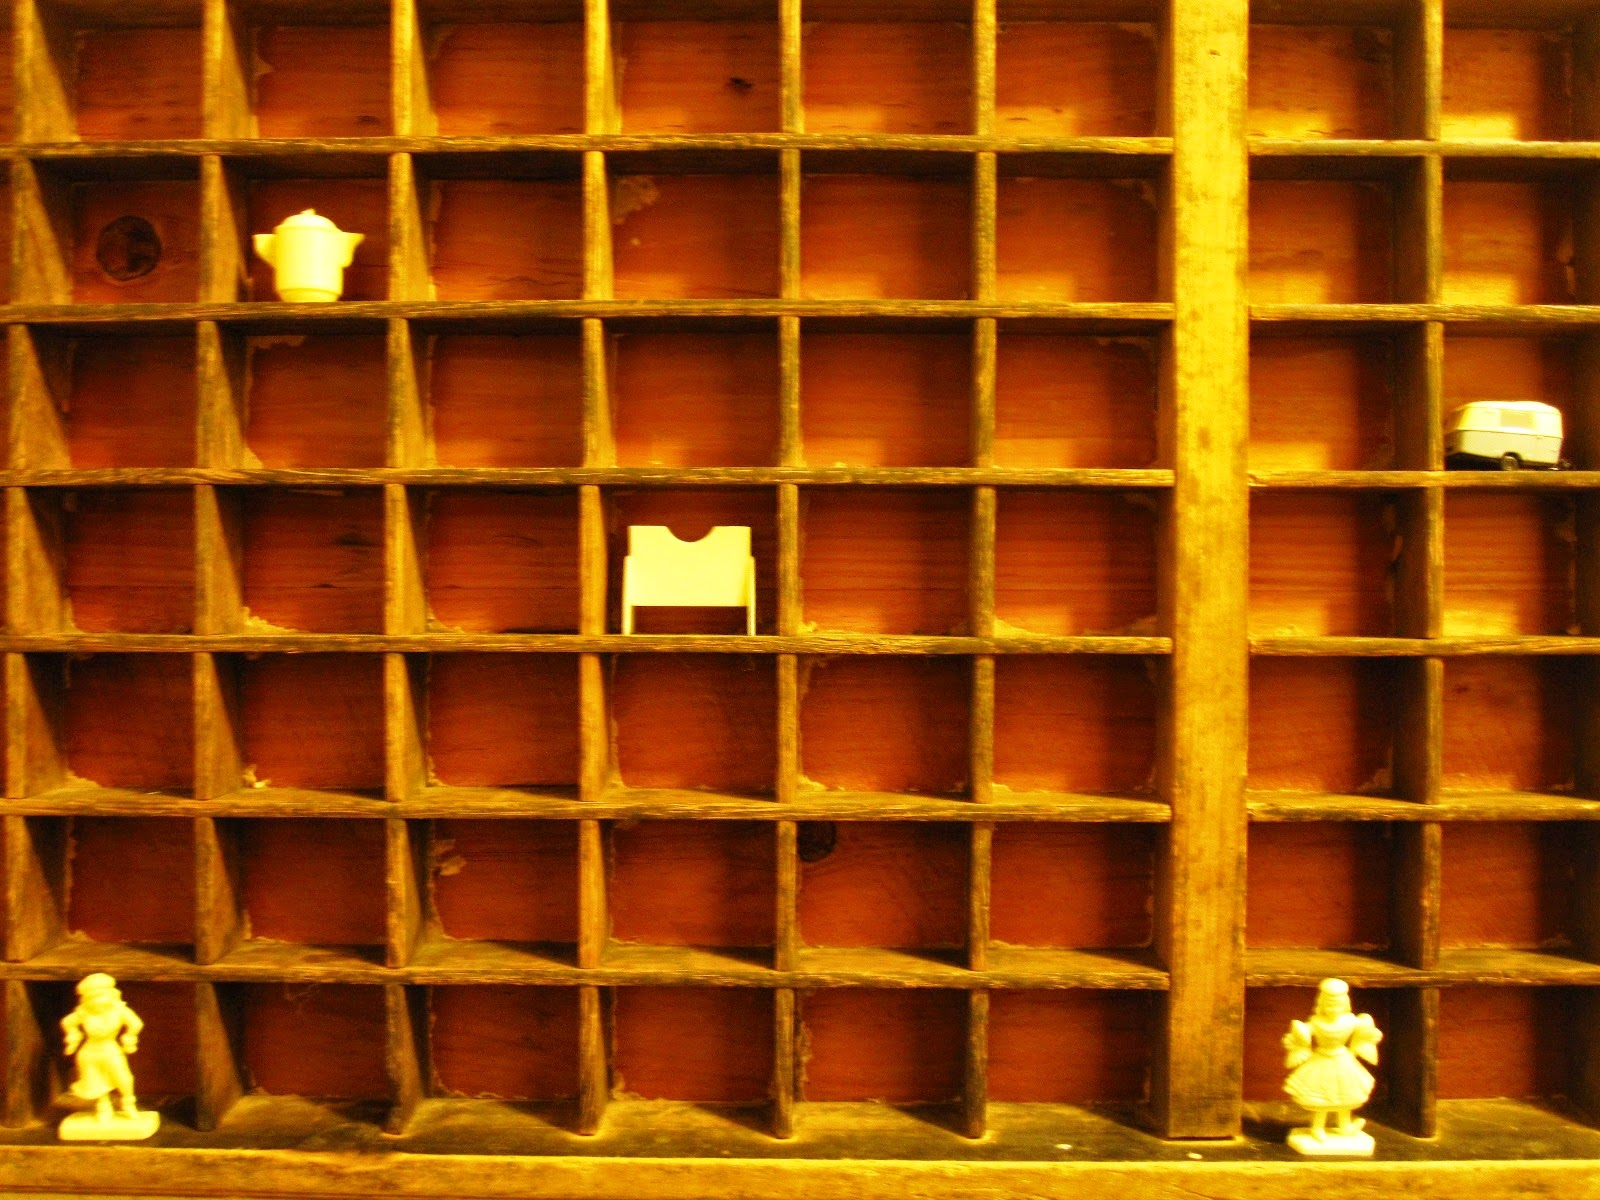 Vintage printer's tray with five cream-coloured miniatures displayed inside.